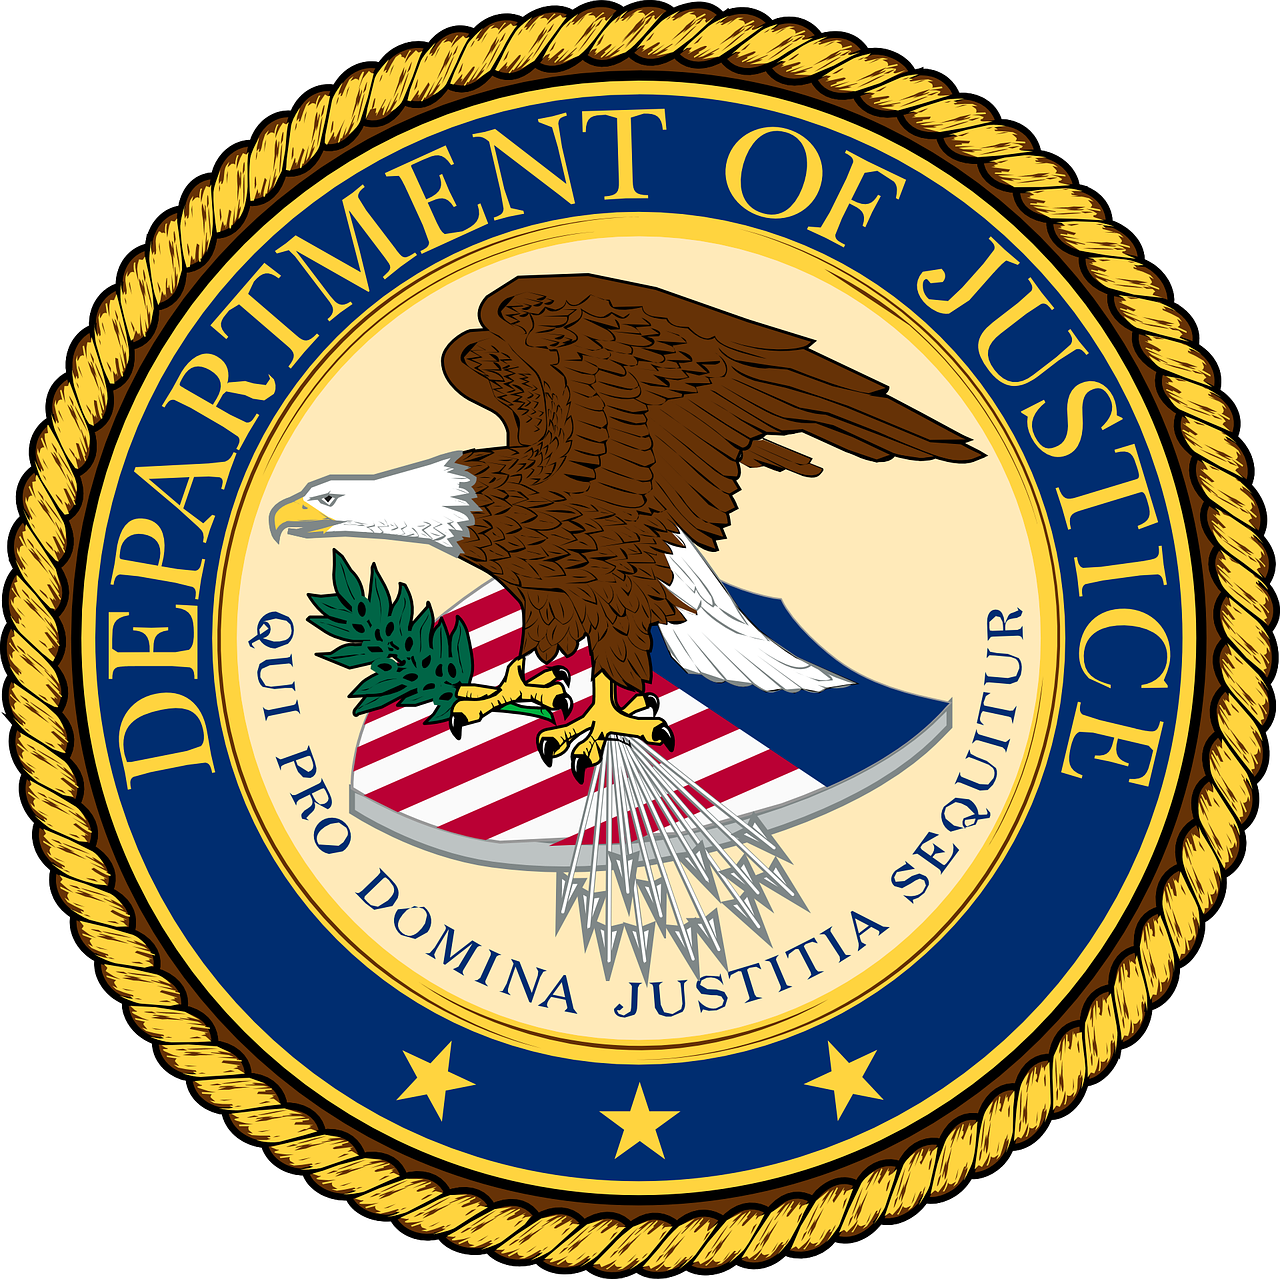 US signs antitrust investigations agreement with Australia, Canada, New Zealand, UK